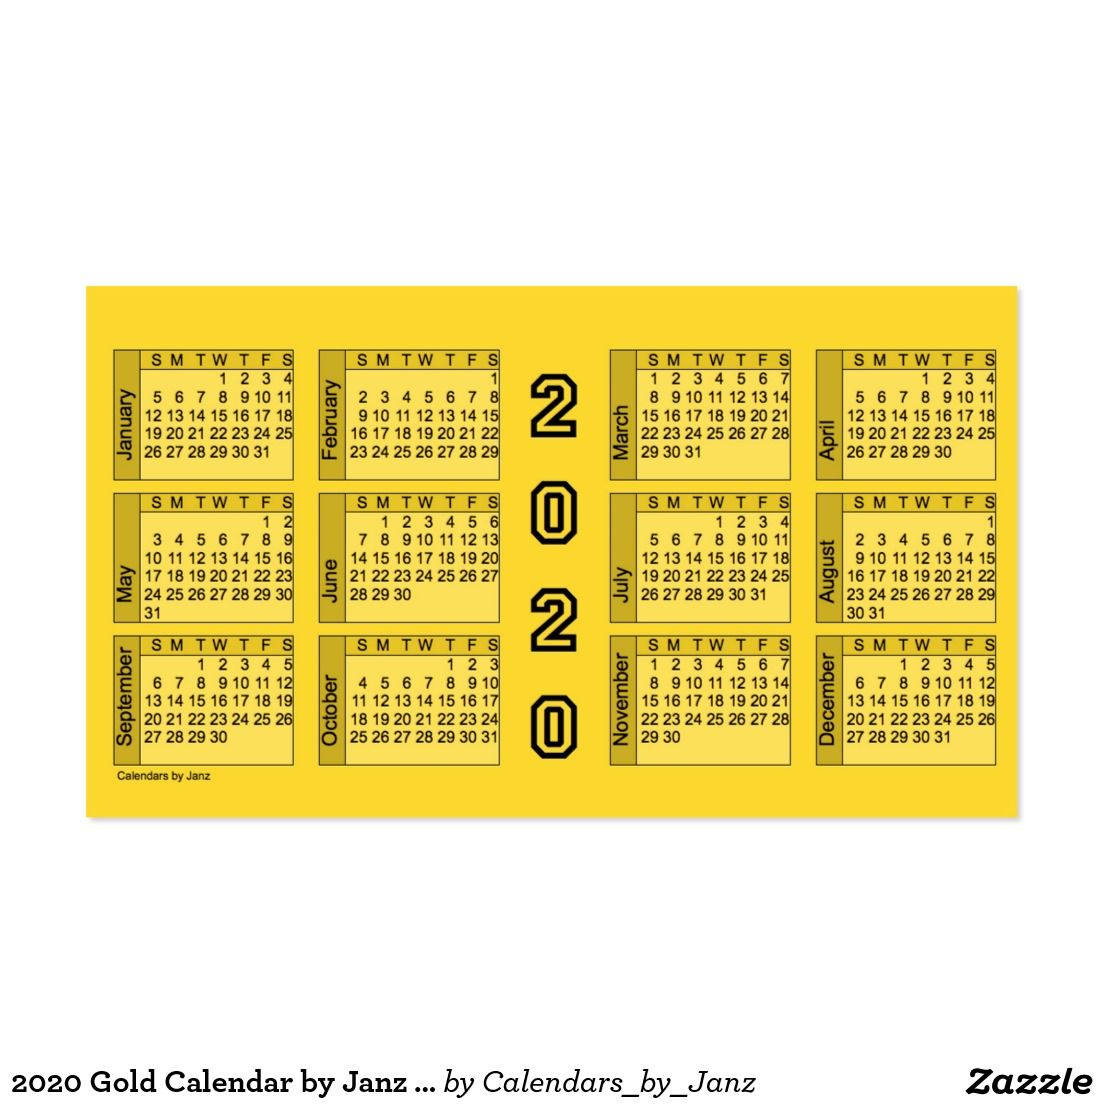 2020 Gold Calendar by Janz Business Card | AV Best Deals ...